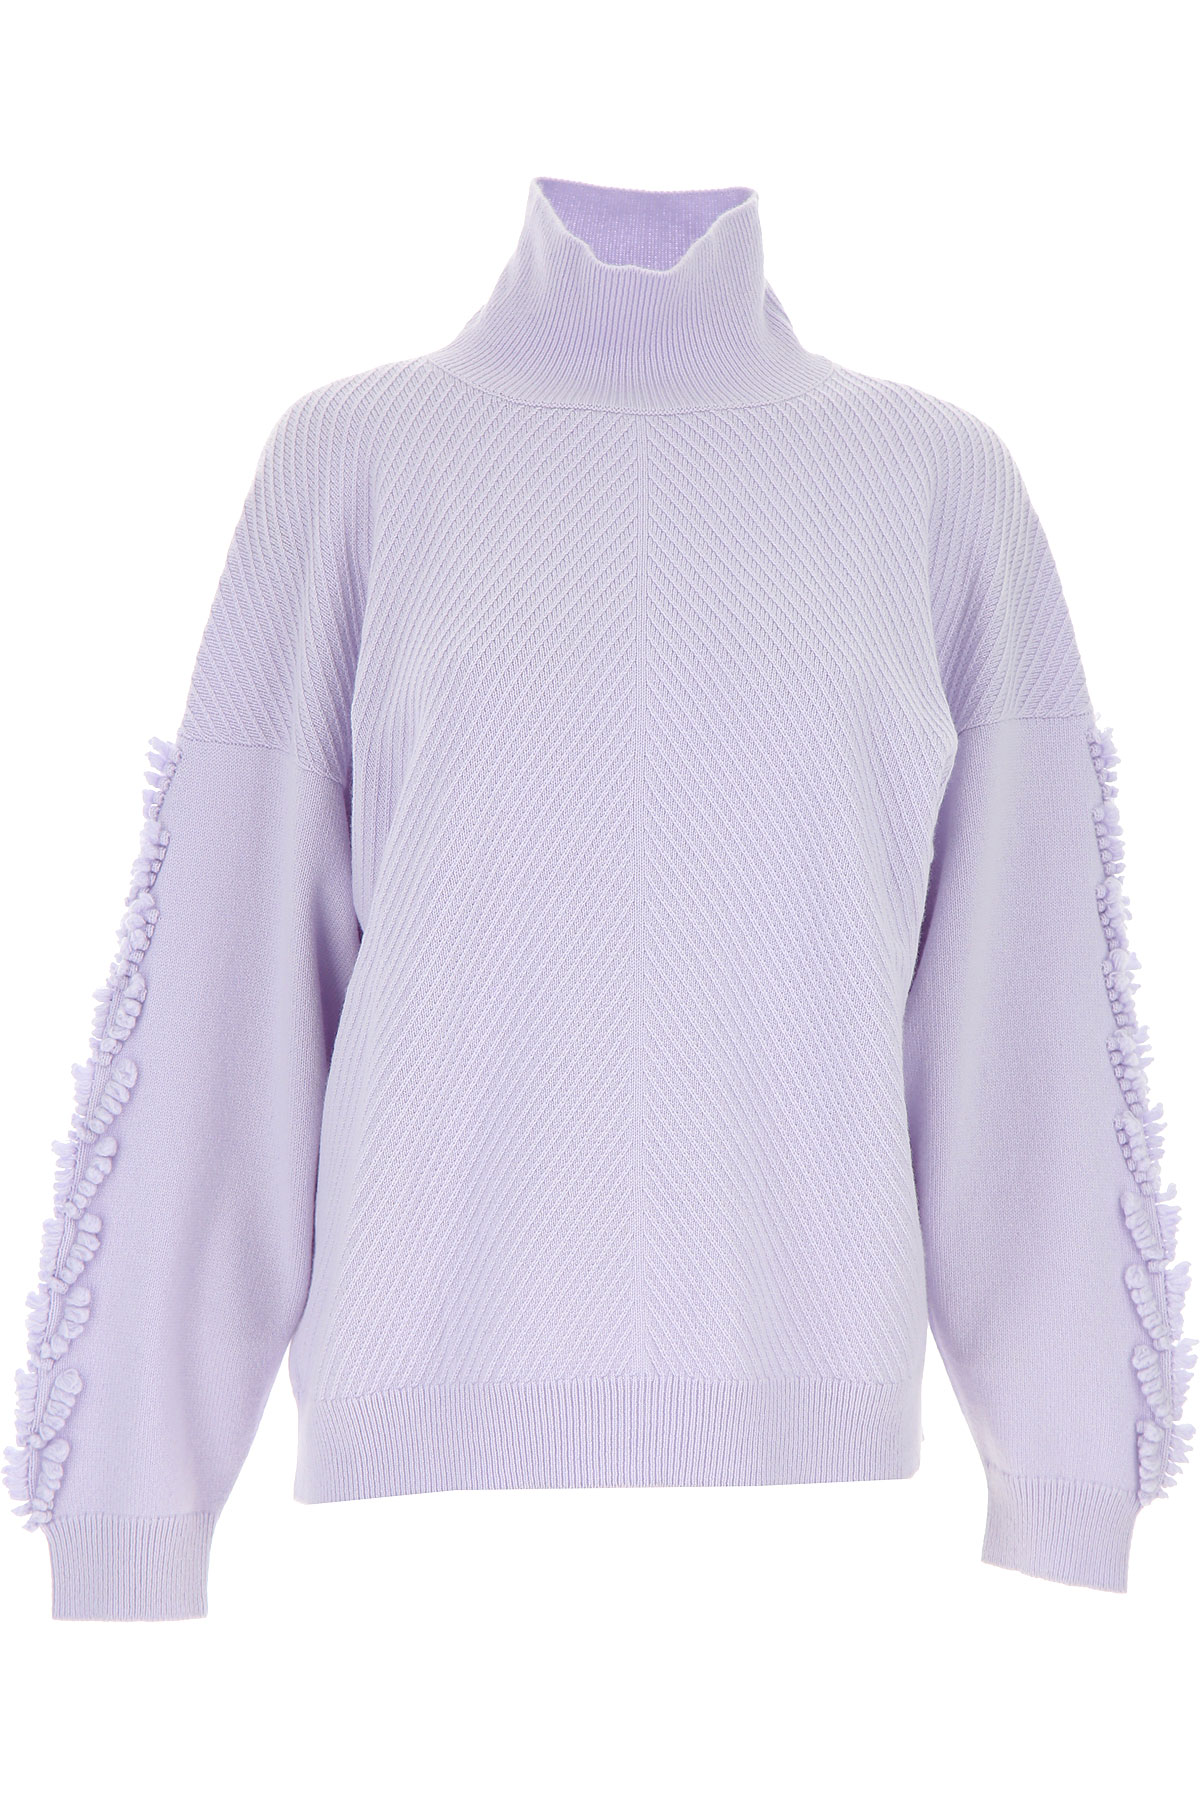 Barrie Sweater for Women Jumper On Sale, Pale Blue, Cashemere, 2019, 4 6